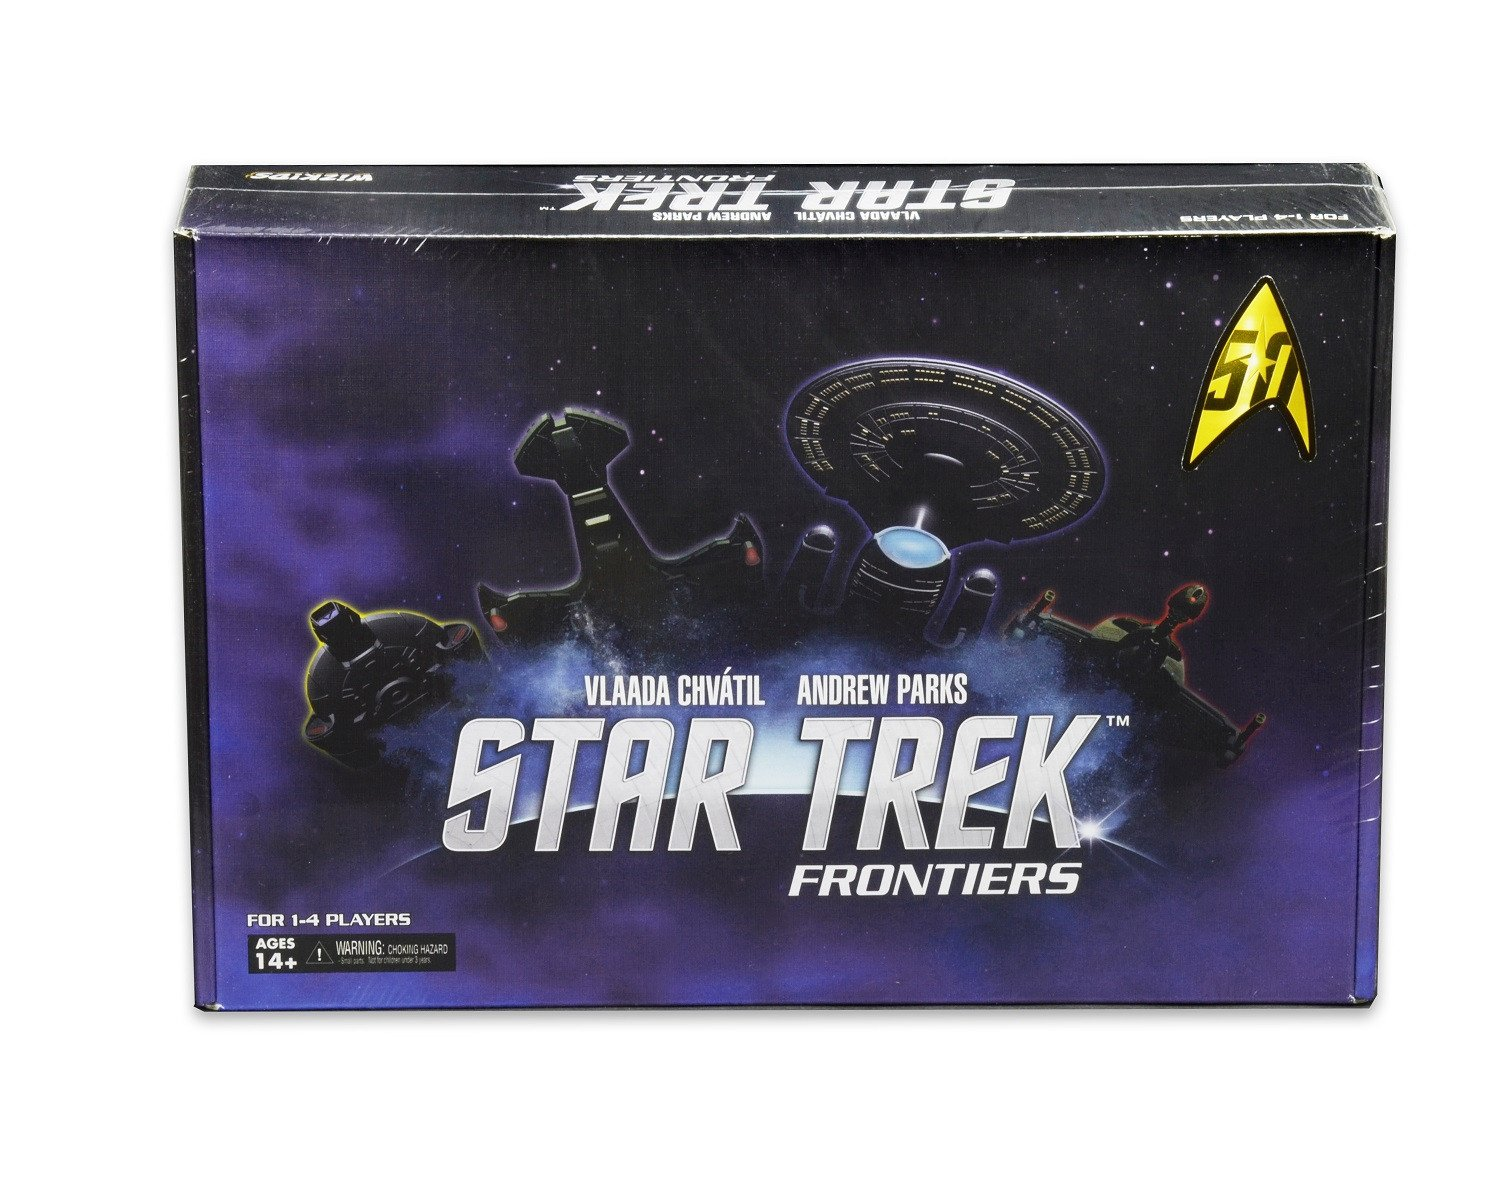 Amazon.com: Star Trek Frontiers (Star Trek Themed Mage Knight) Board Game:  Toys & Games